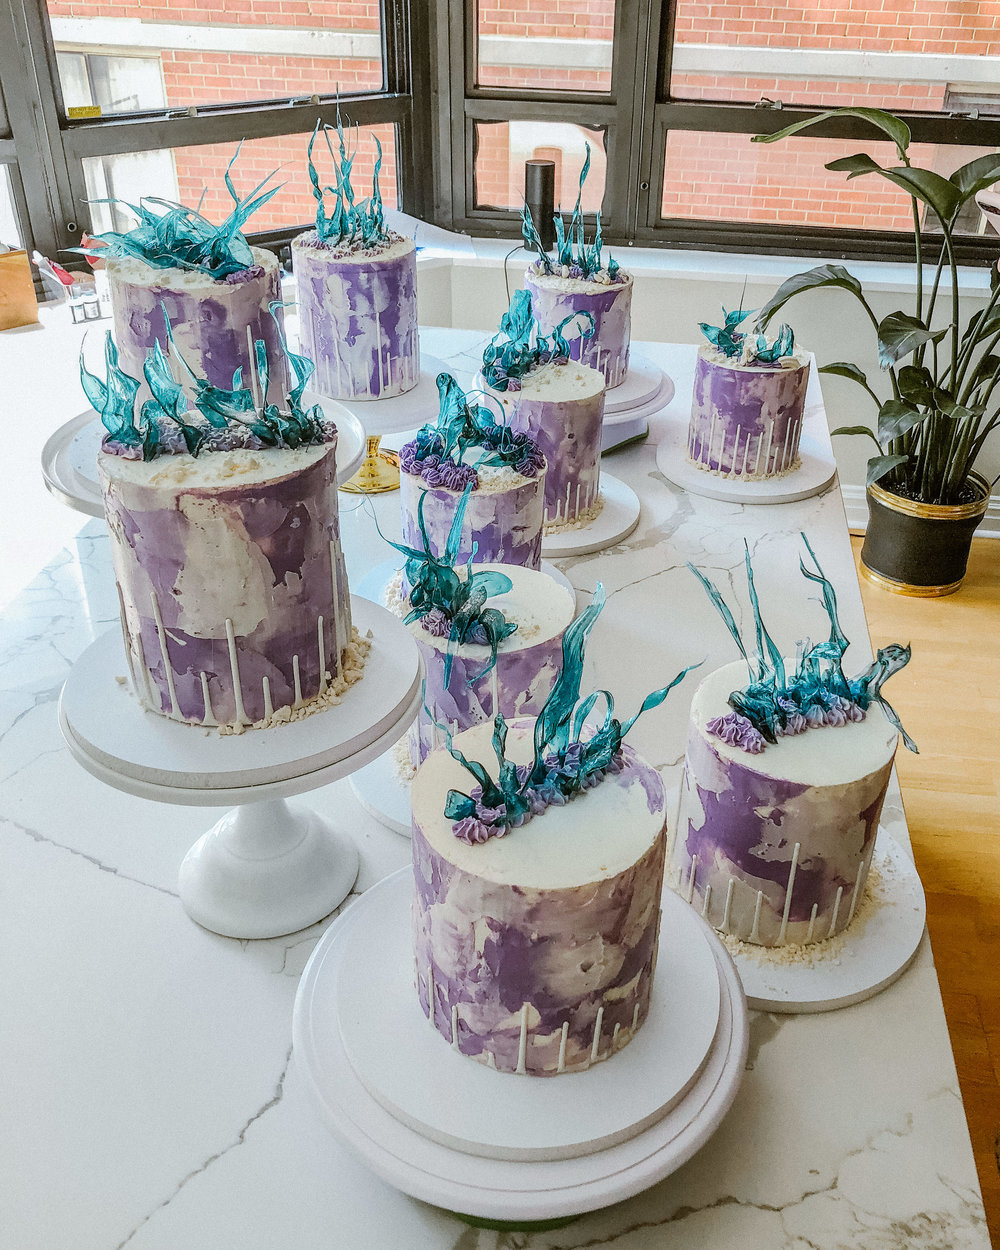 cakesbycliff_nyc_workshop01.jpg